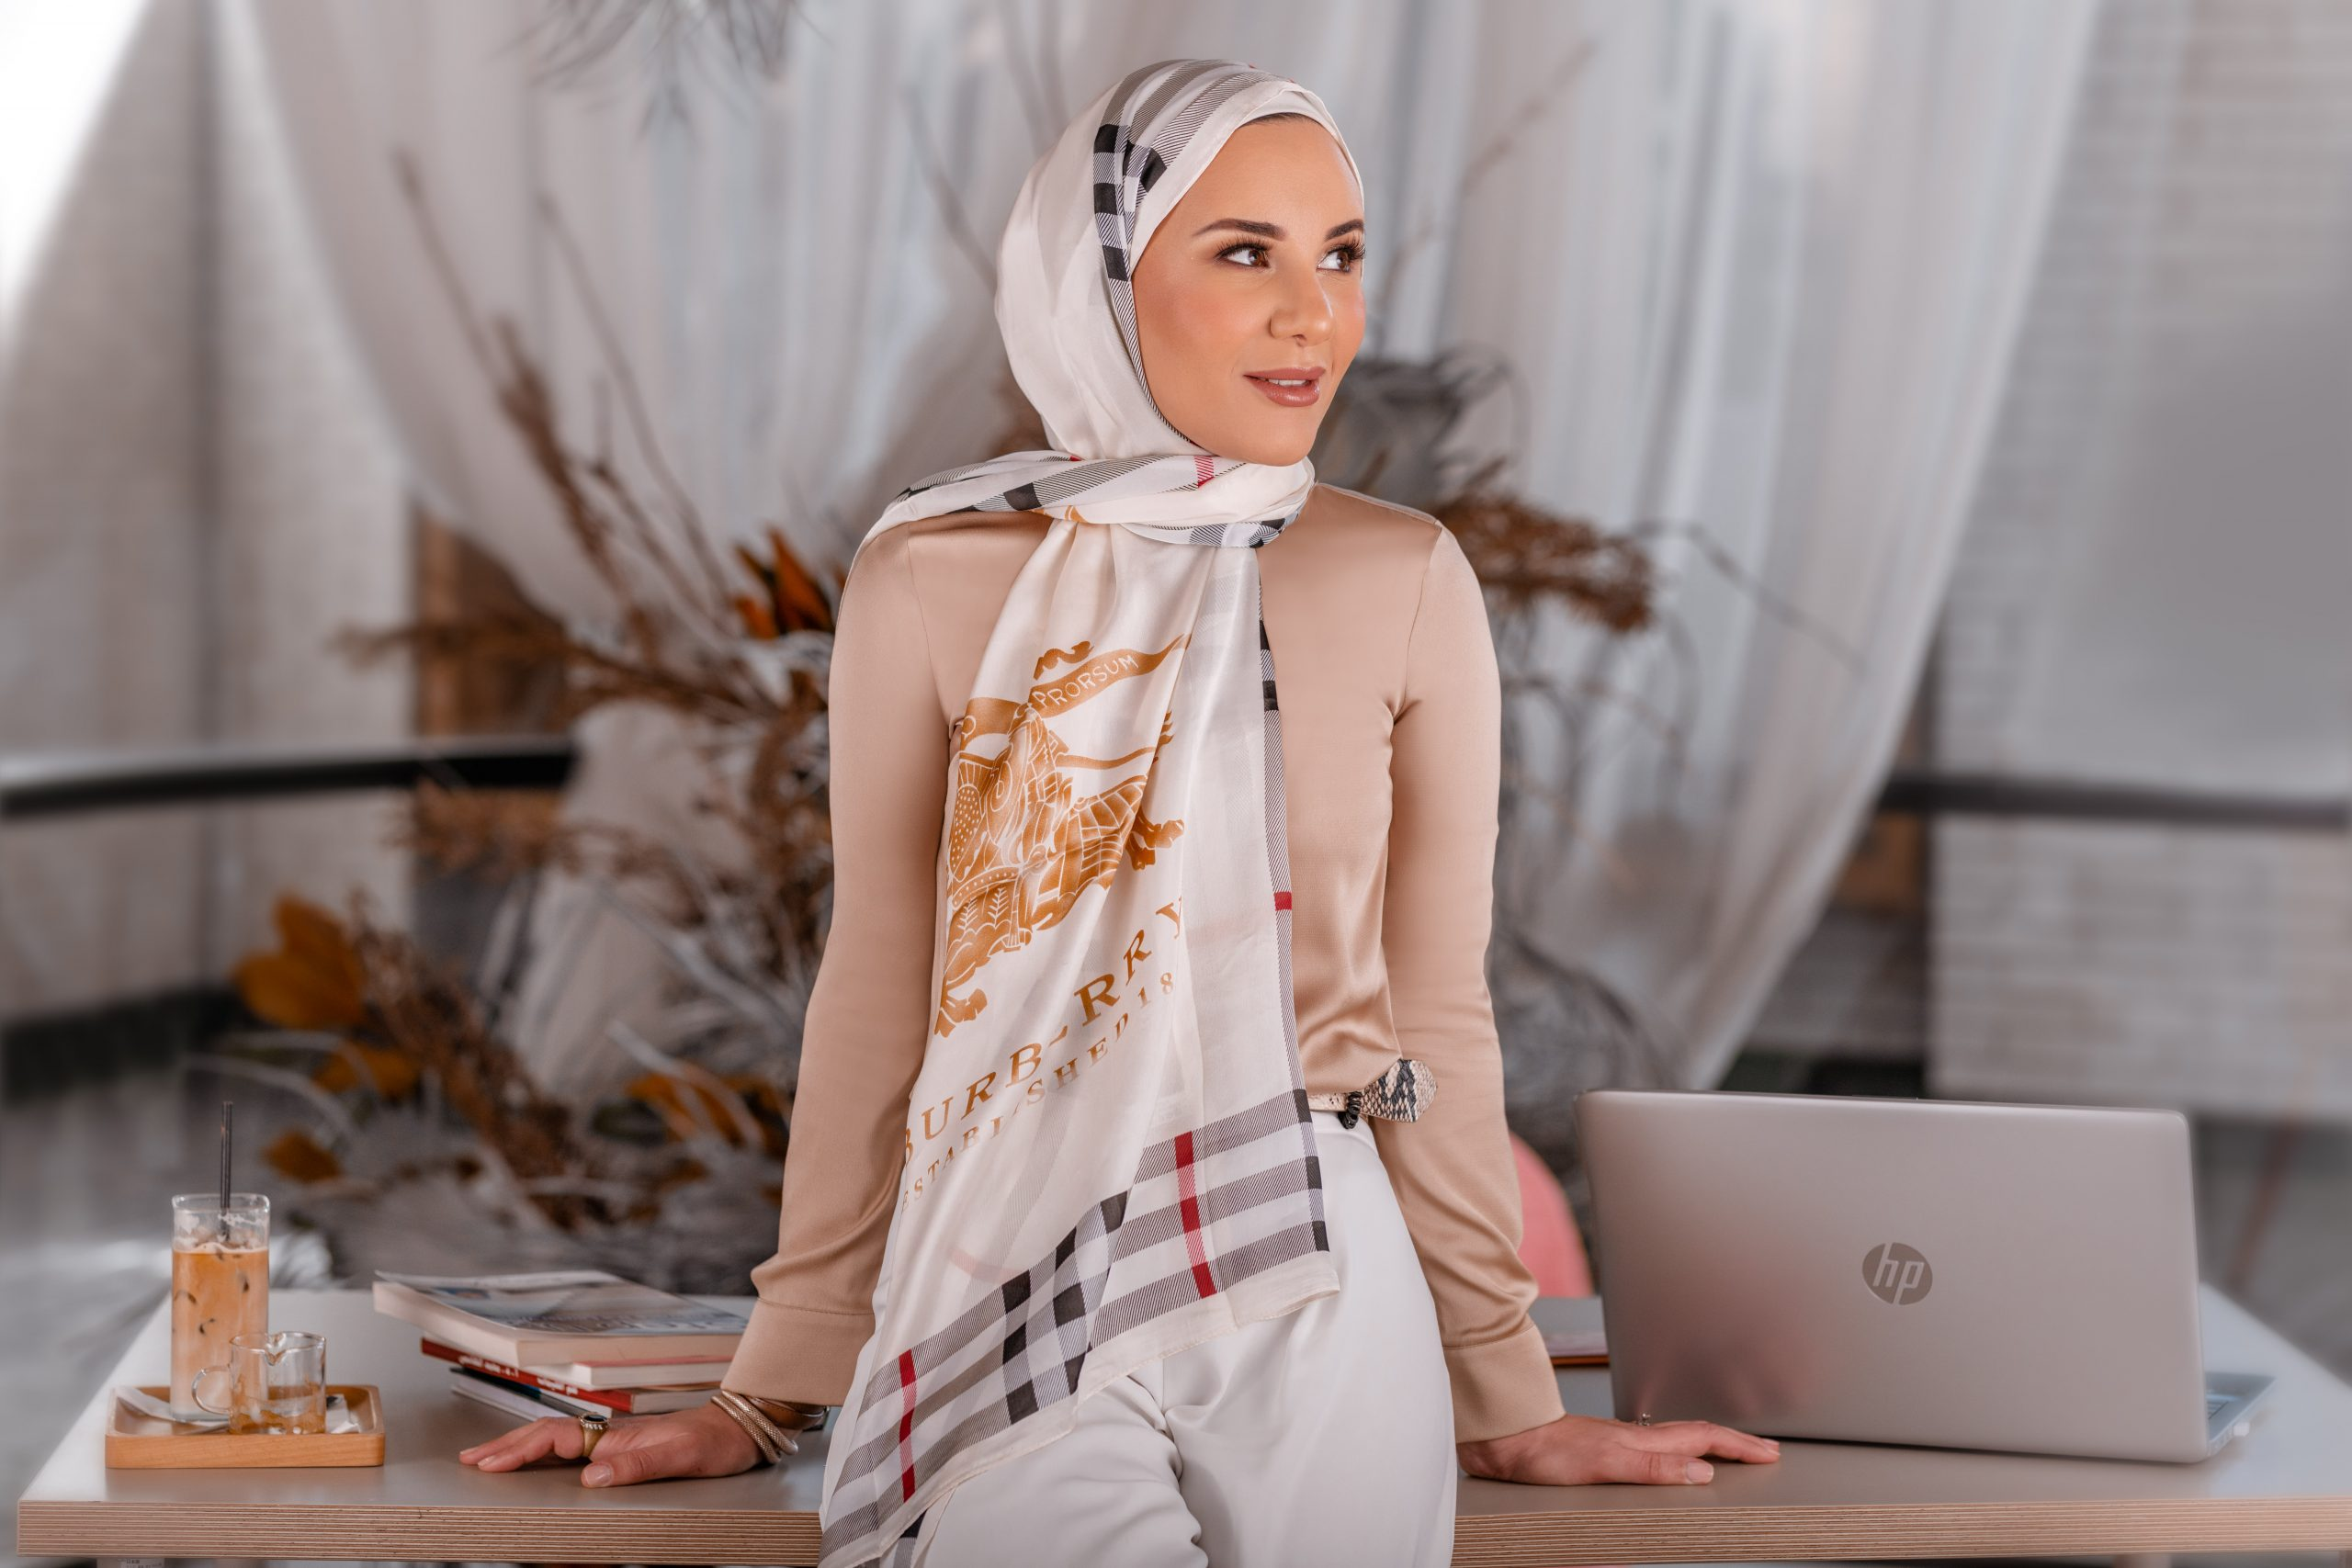 Muslim moms struggle to find a home in mainstream wellness community. 1